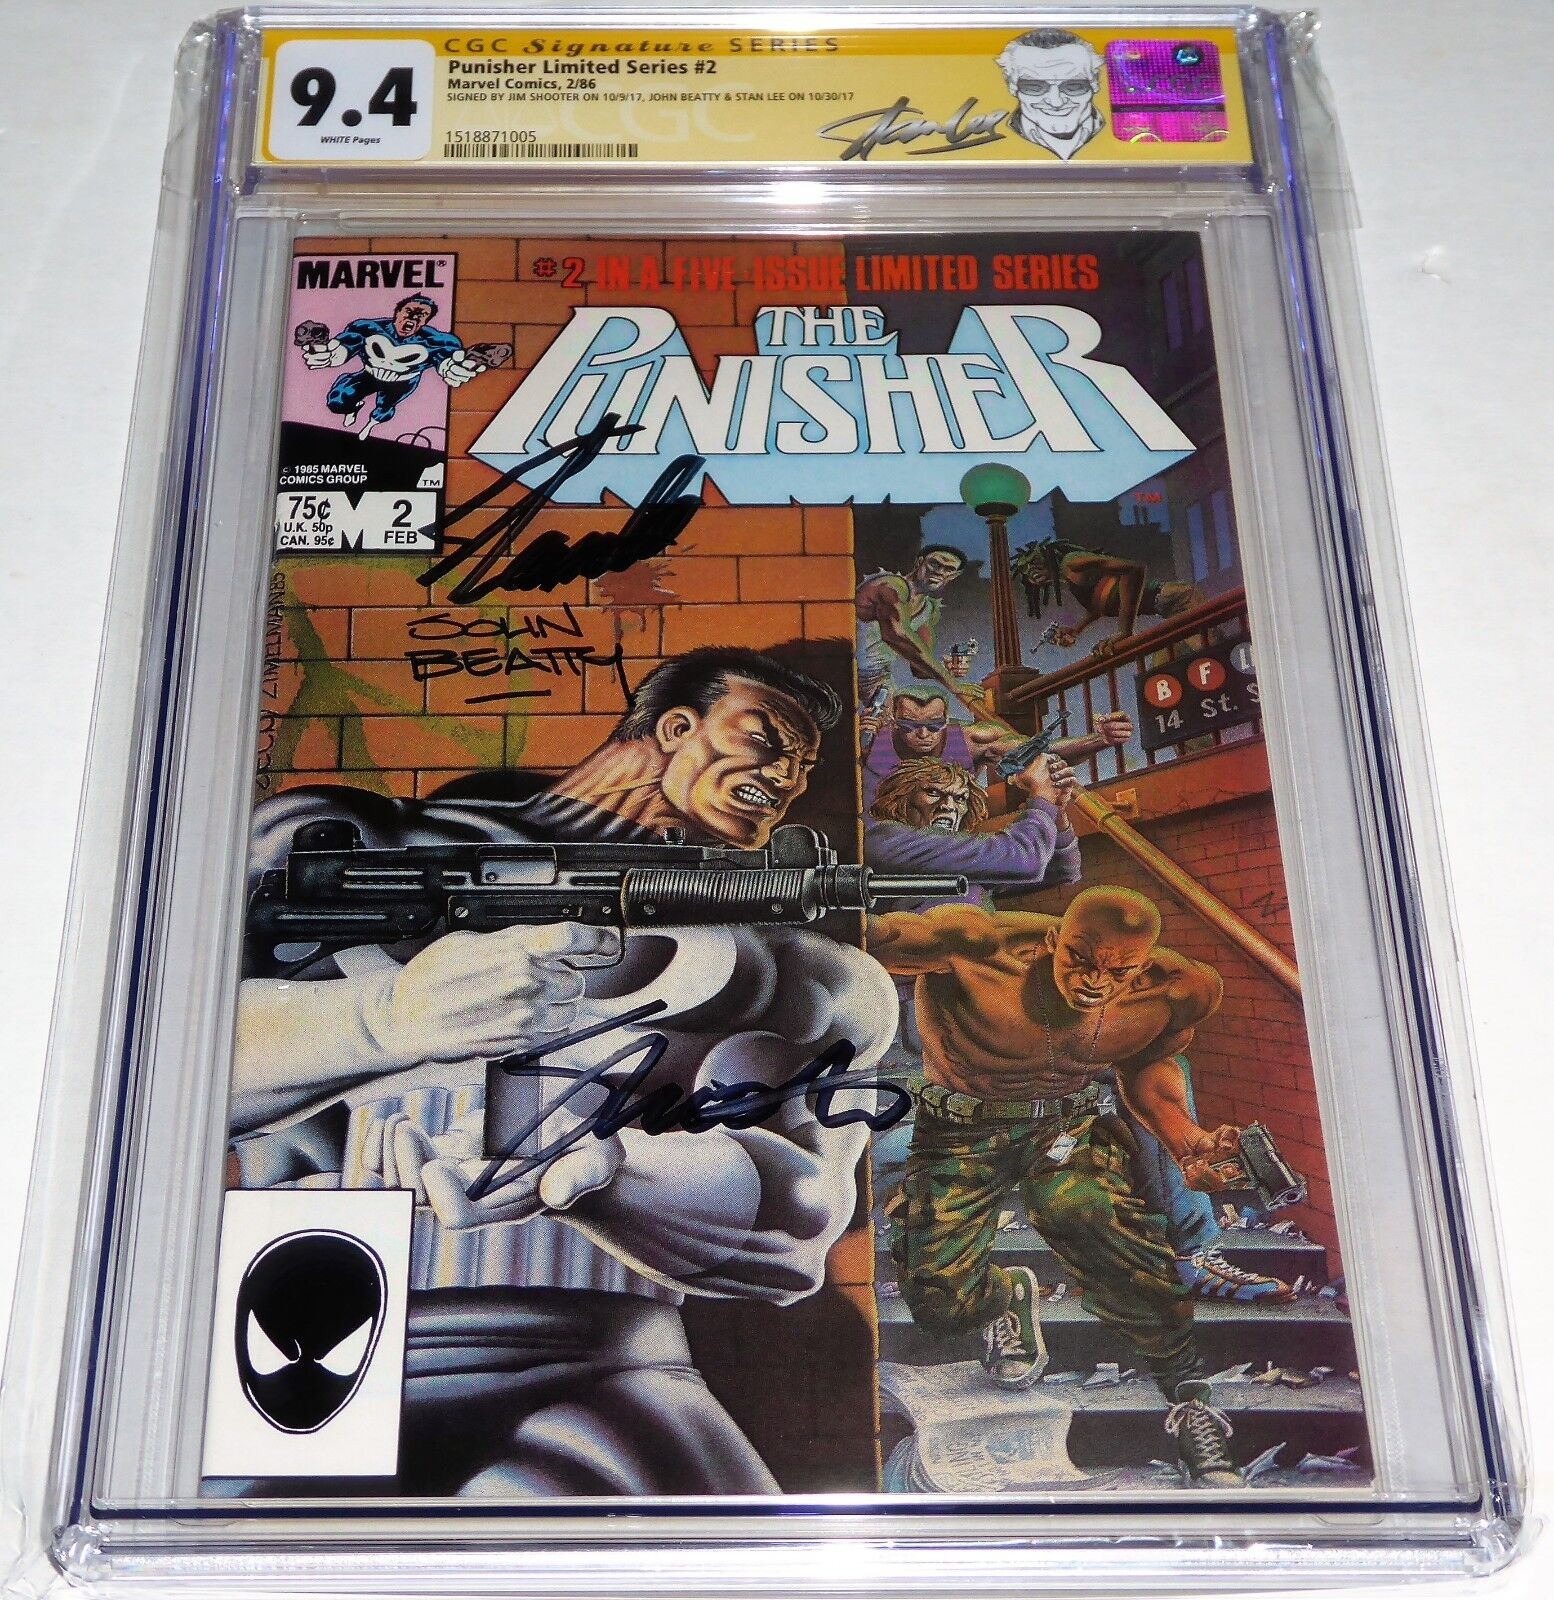 Punisher Limited Series #2 3x CGC SS Signature Autograph STAN LEE SHOOTER BEATTY